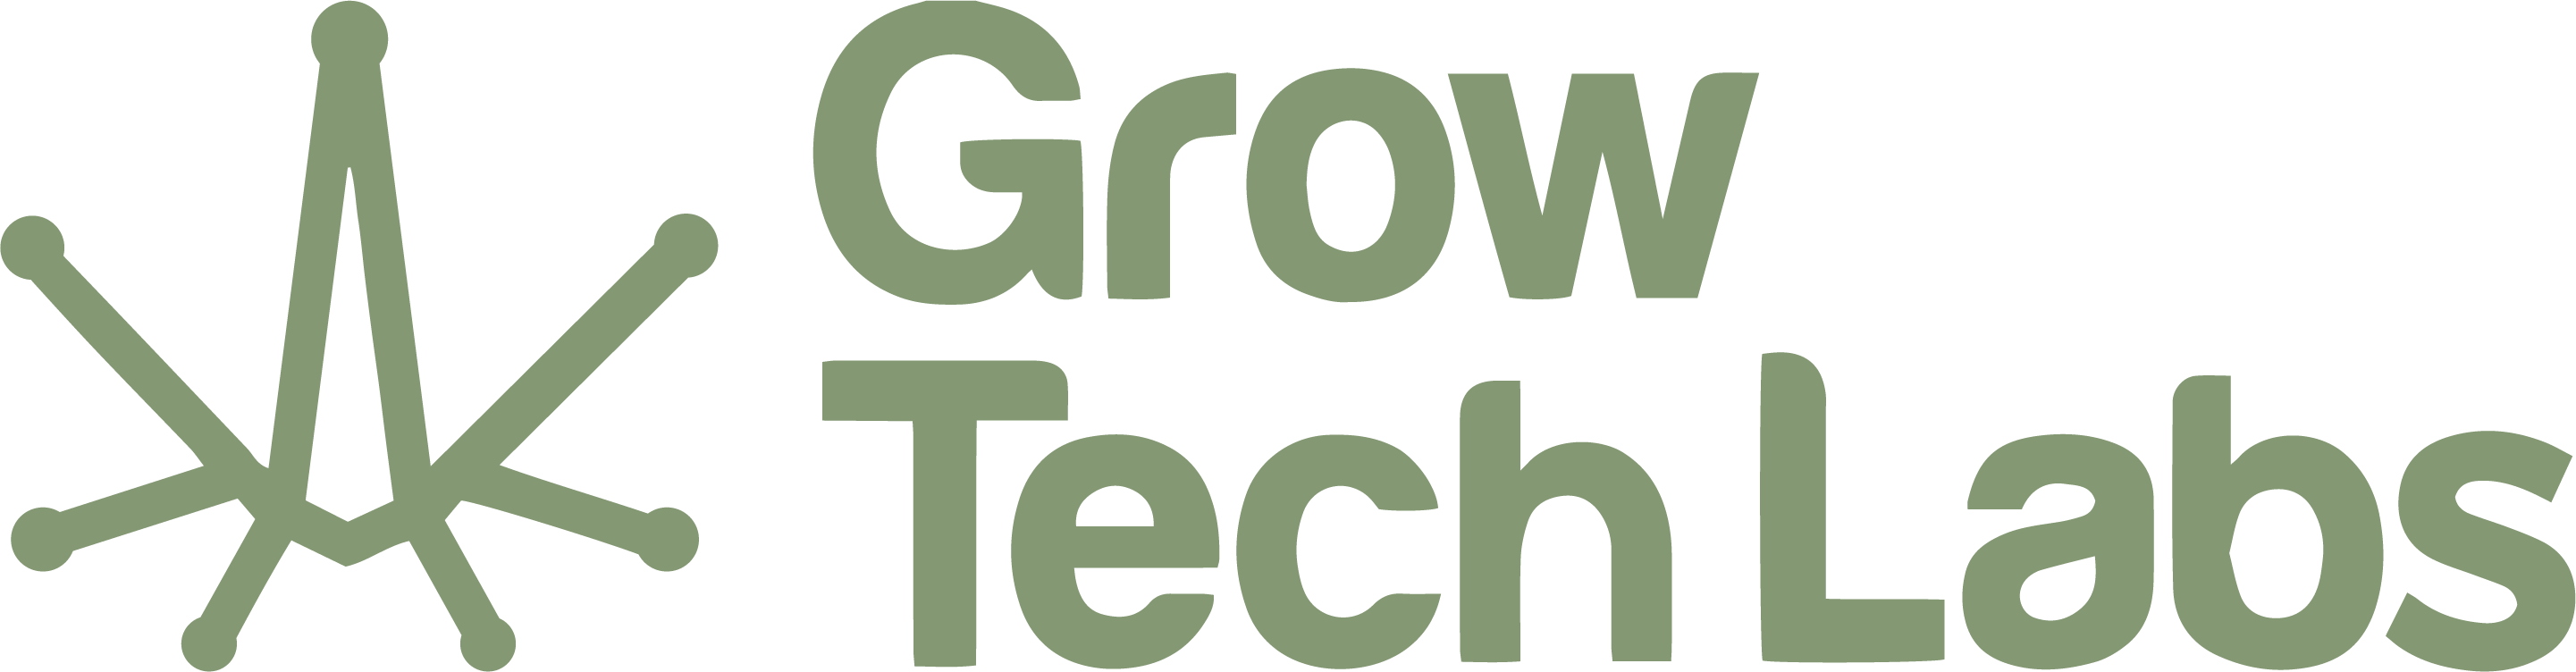 growtechlabs-greenlogo.png